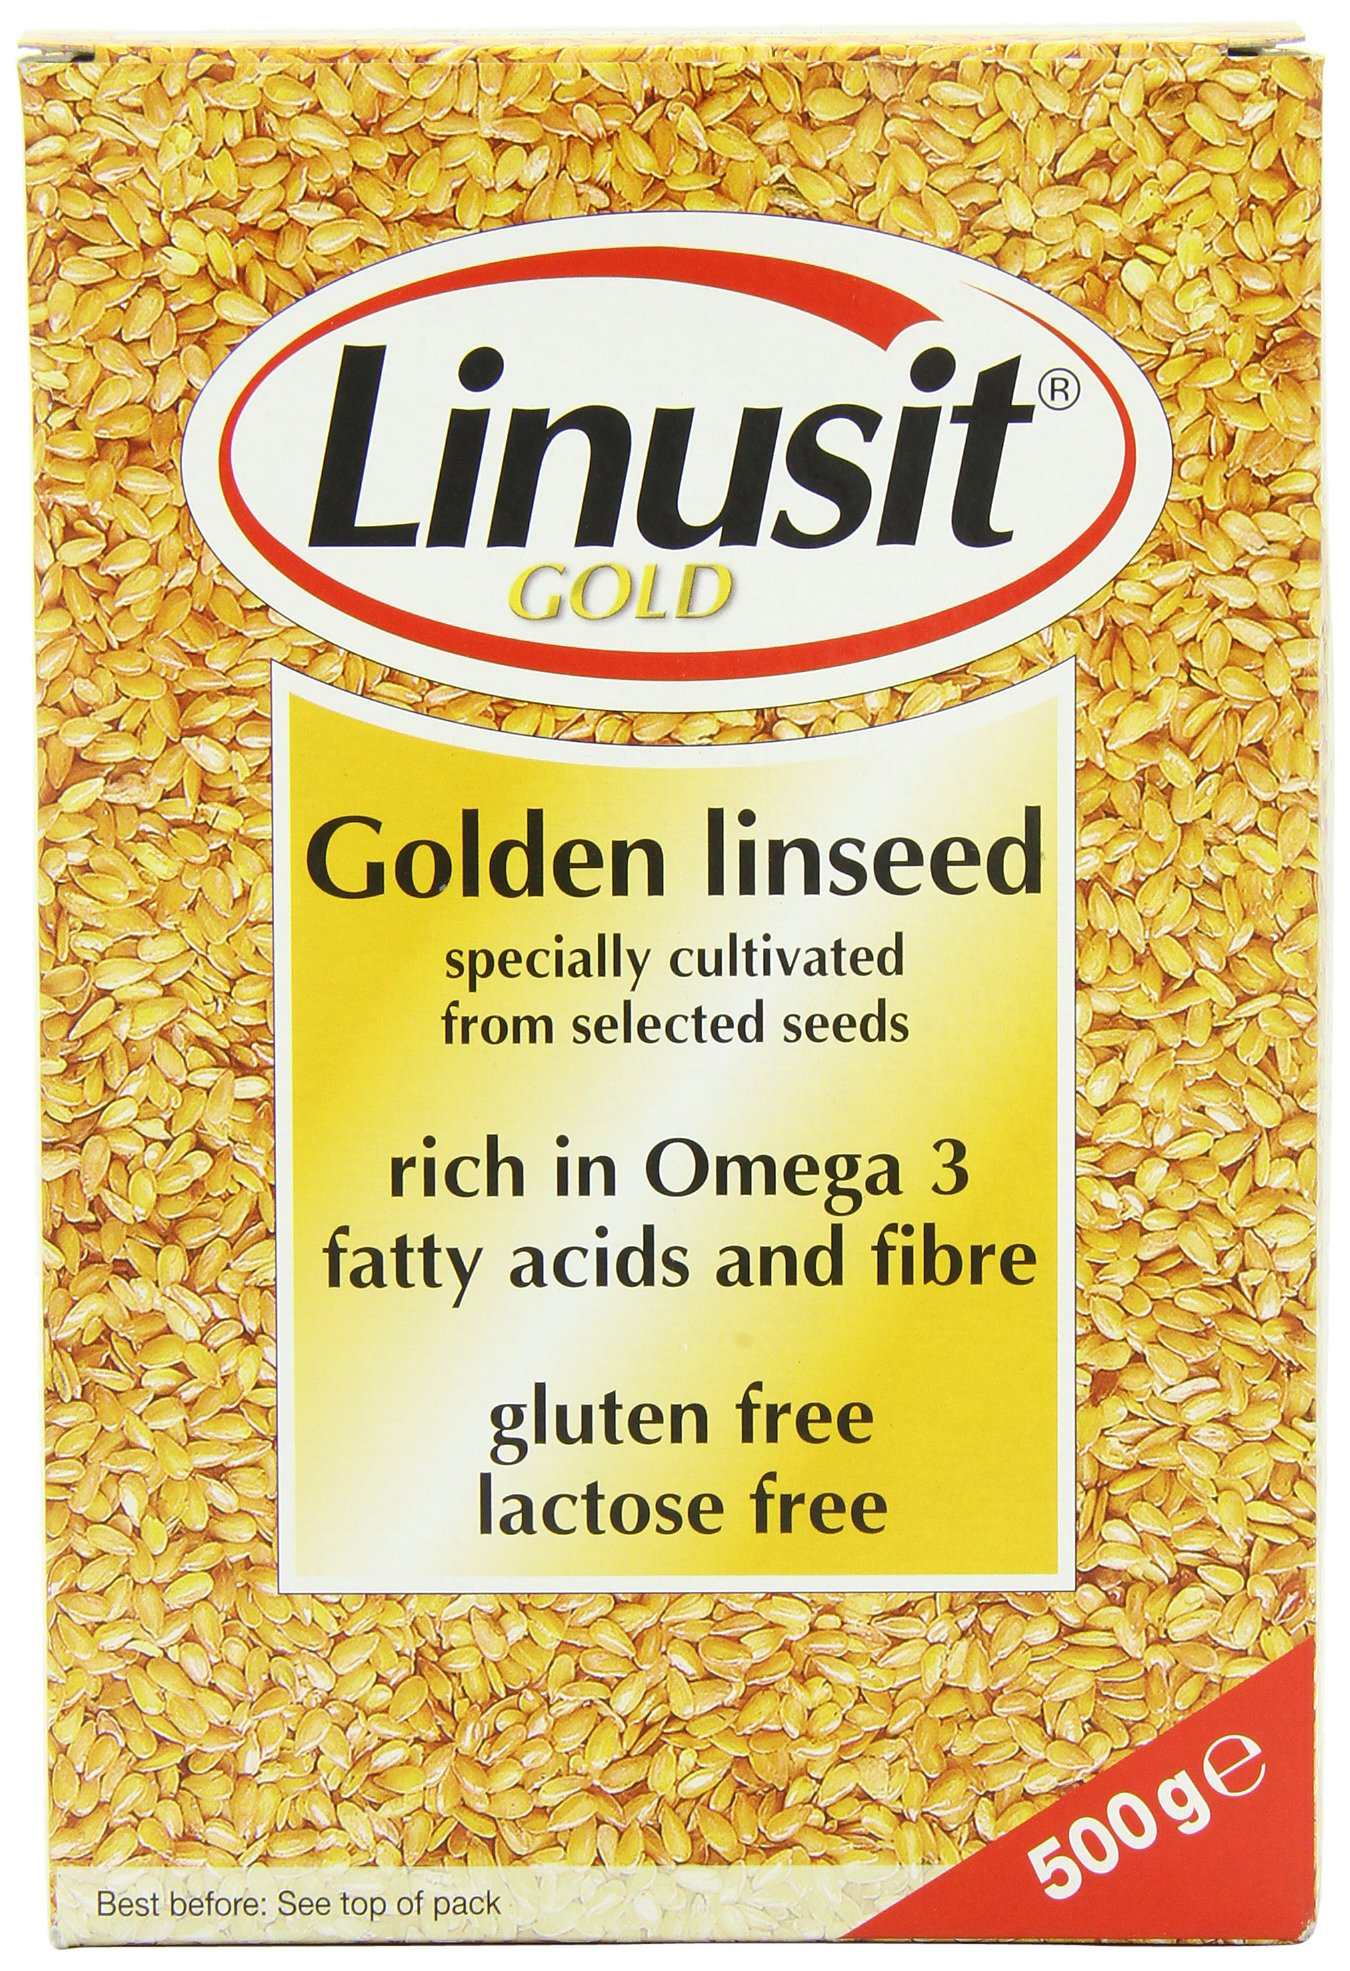 Linusit Gold Golden Linseed 500 g